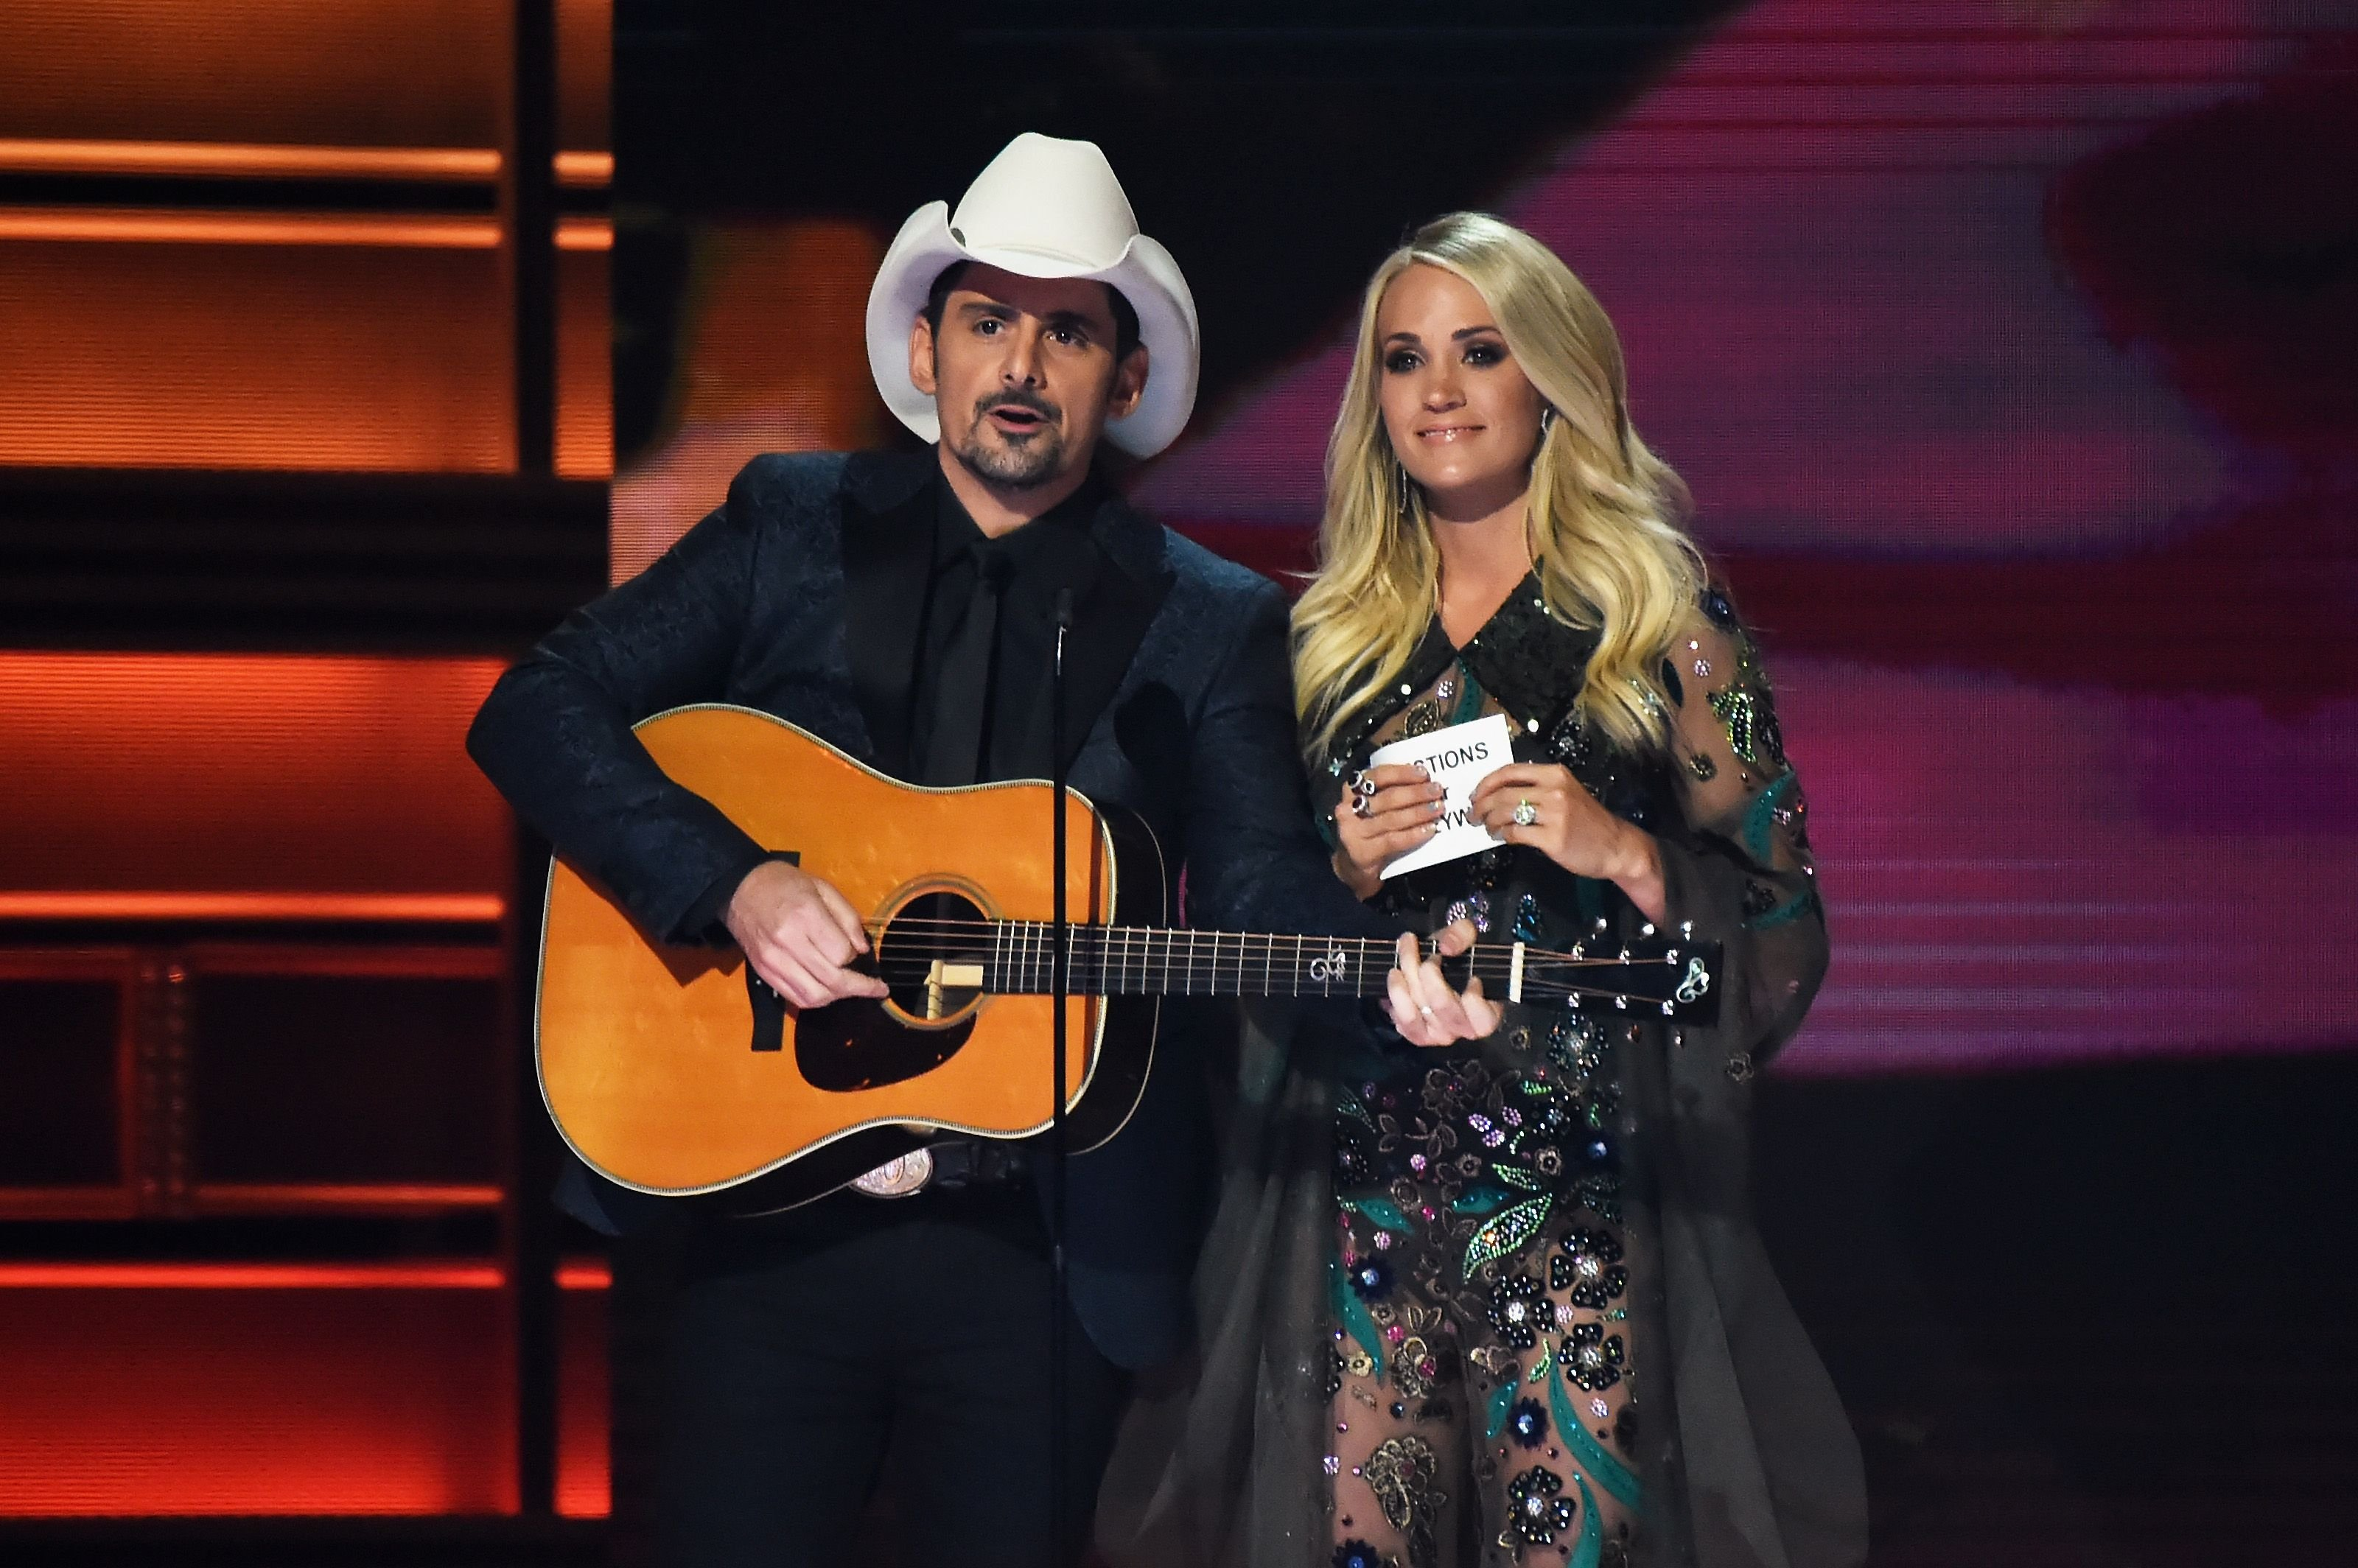 Brad Paisley and Carrie Underwood co-hosting the 51st annual CMA Awards at the Bridgestone Arena on November 8, 2017 in Nashville, Tennessee Photo Getty Images